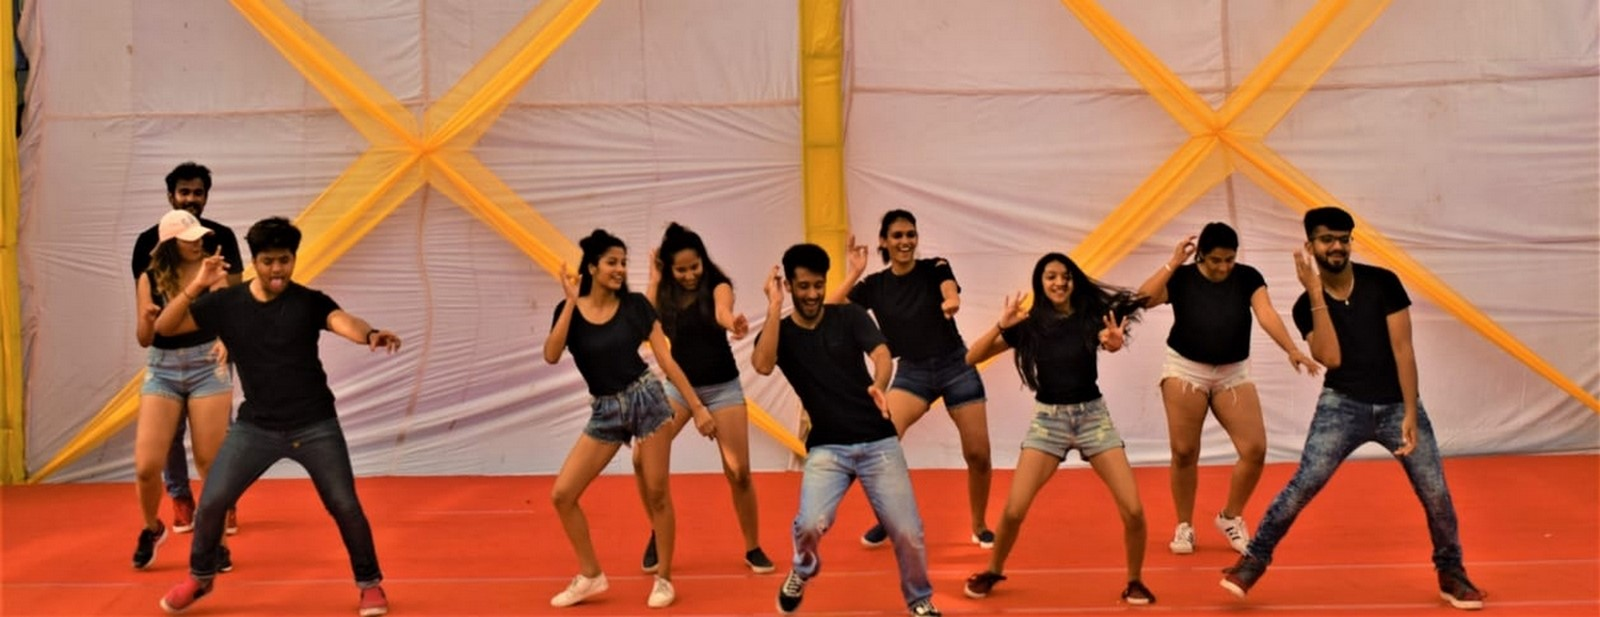 Campus Life at Sushant School of Art and Architecture - Sheet6